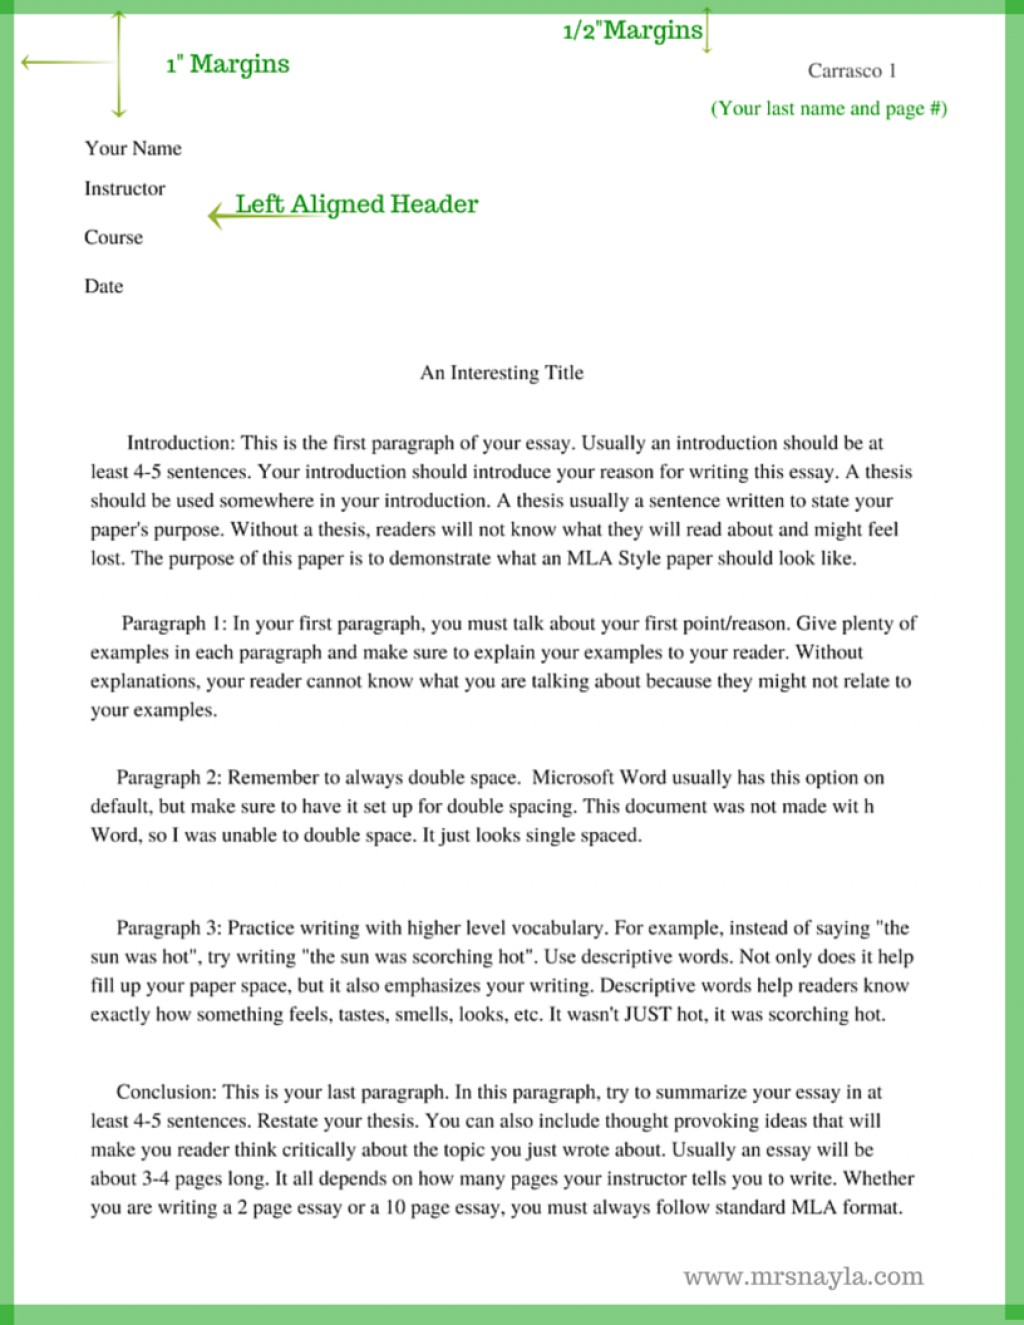 023 Essay Example Mla Format Fearsome 2018 With Cover Page Large